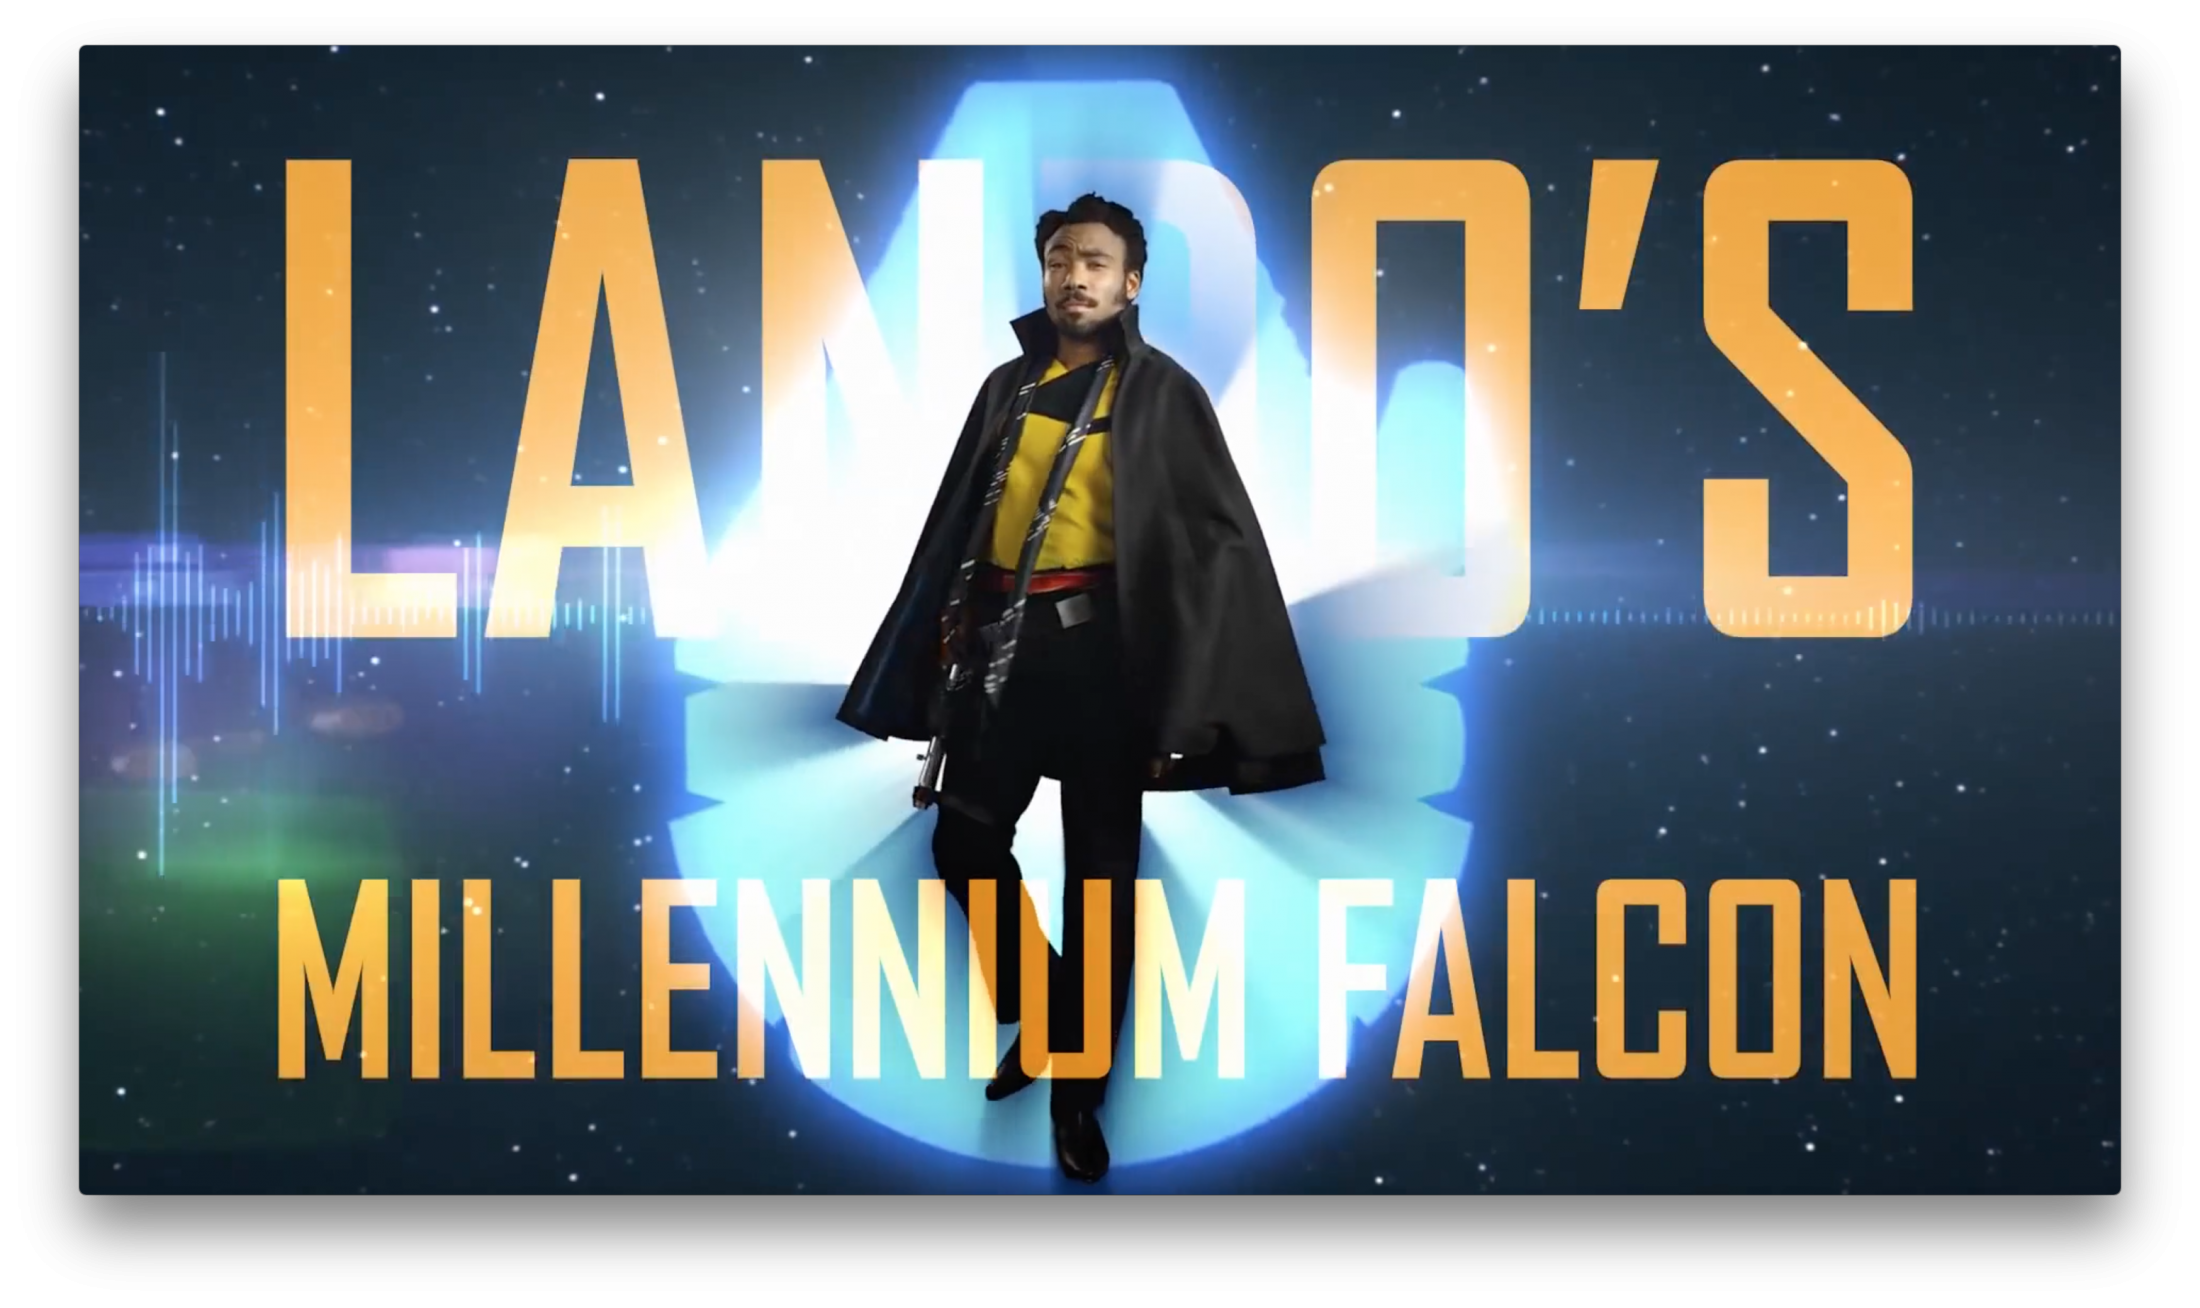 Thumbnail for Lando's Millennium Falcon